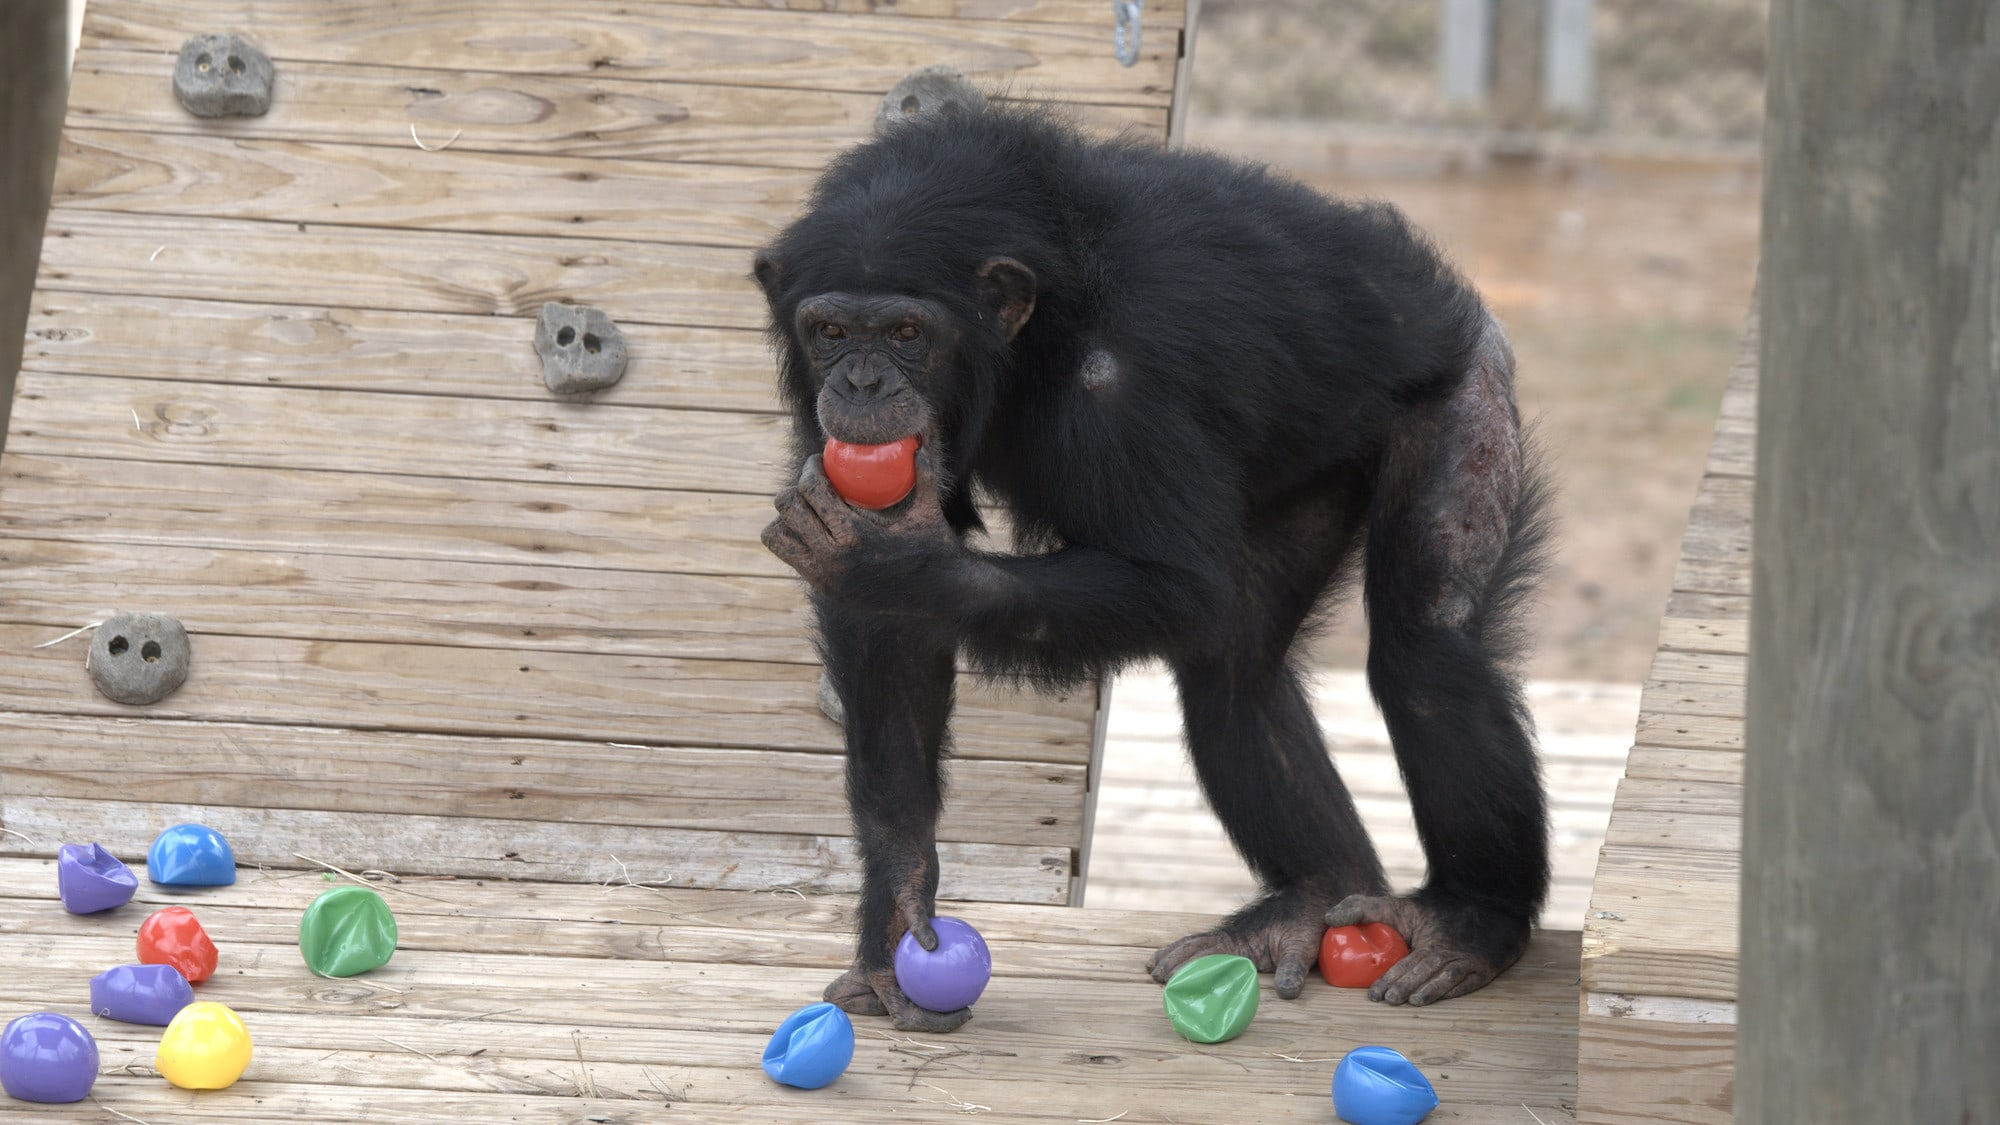 Onyx chewing a red ball. Slim's group. (National Geographic/Virginia Quinn)